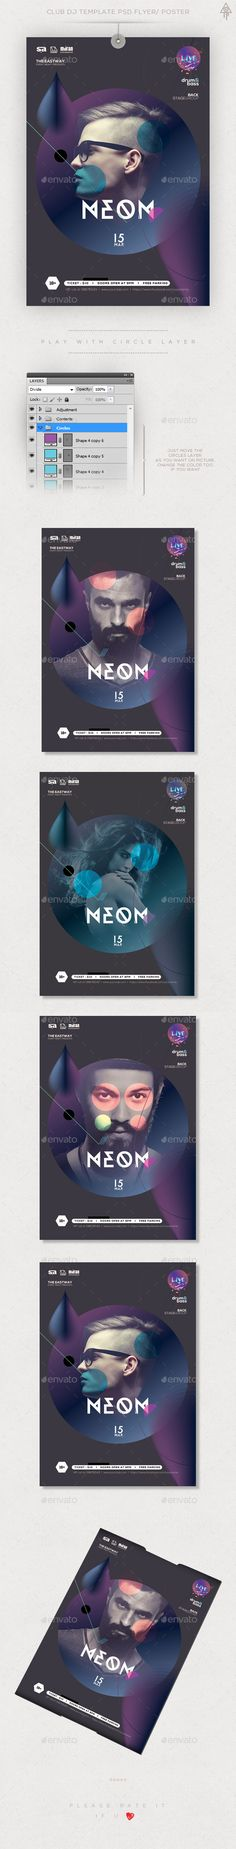 Club Flyer / Poster Template PSD #design Download: http://graphicriver.net/item/club-flyer-poster/14535566?ref=ksioks